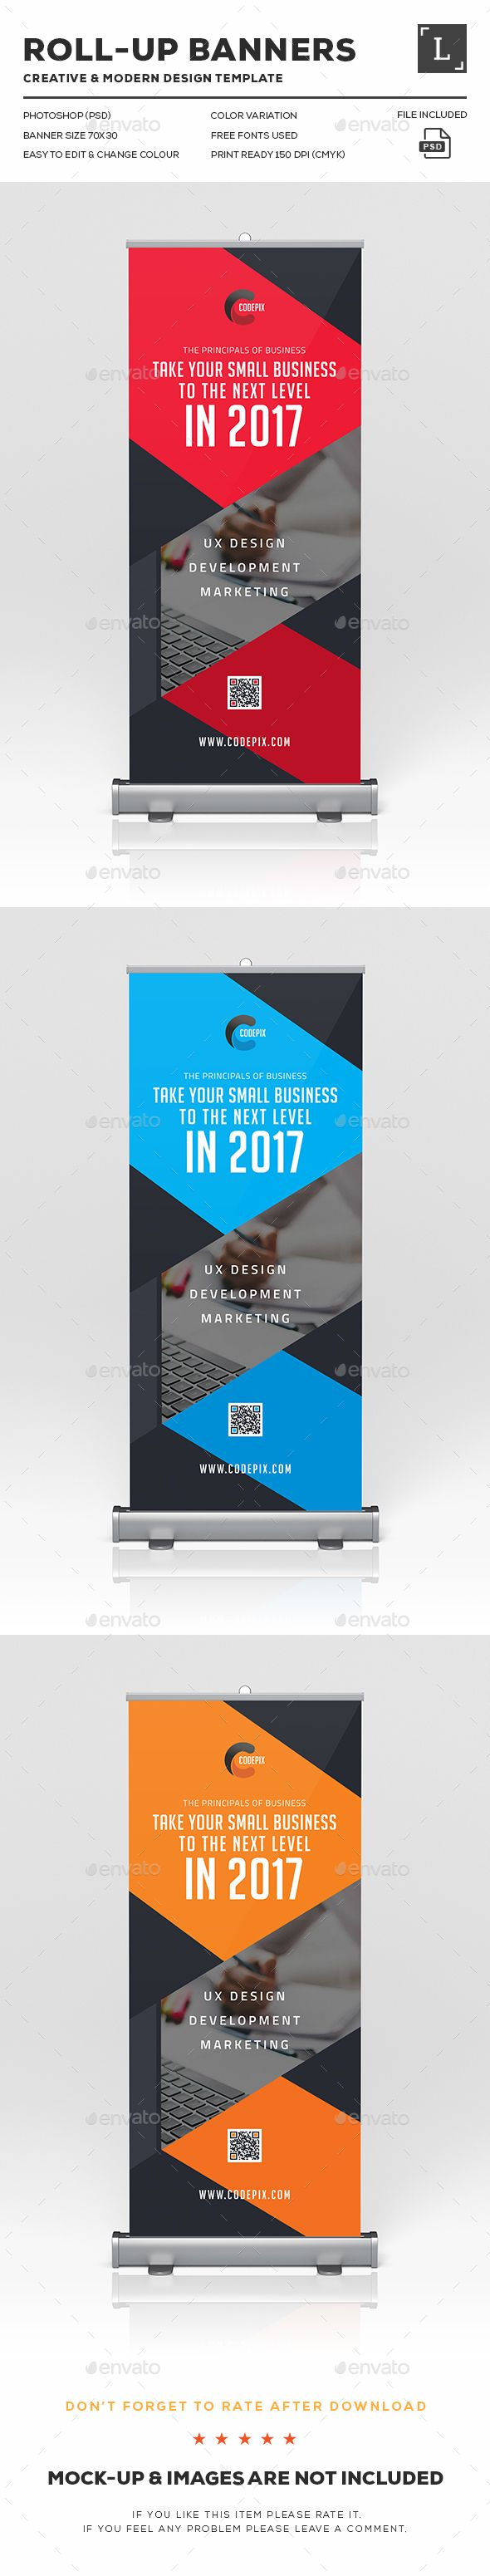 Corporate Roll Up Banner Design Template – Signage Print Throughout Vinyl Banner Design Templates